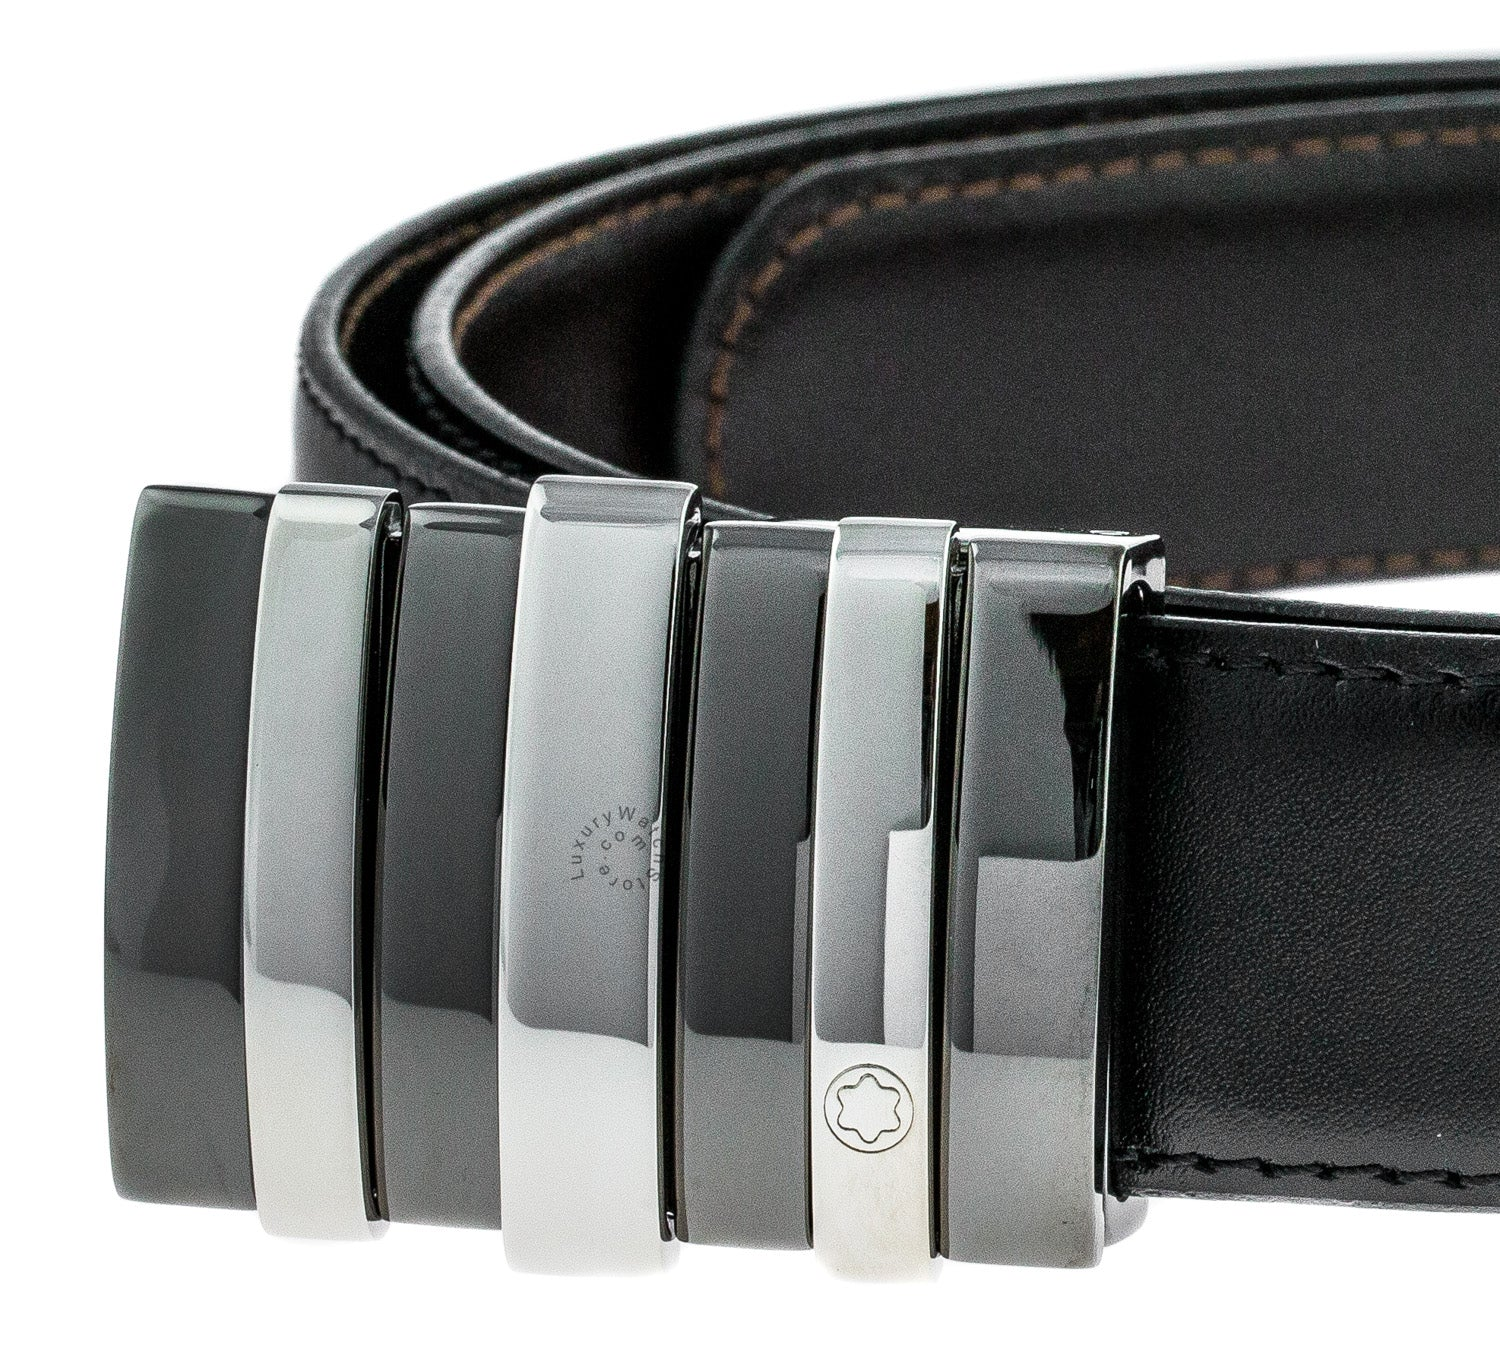 Montblanc Contemporary Line 3 Rings Motif Men's Leather Belt 103427